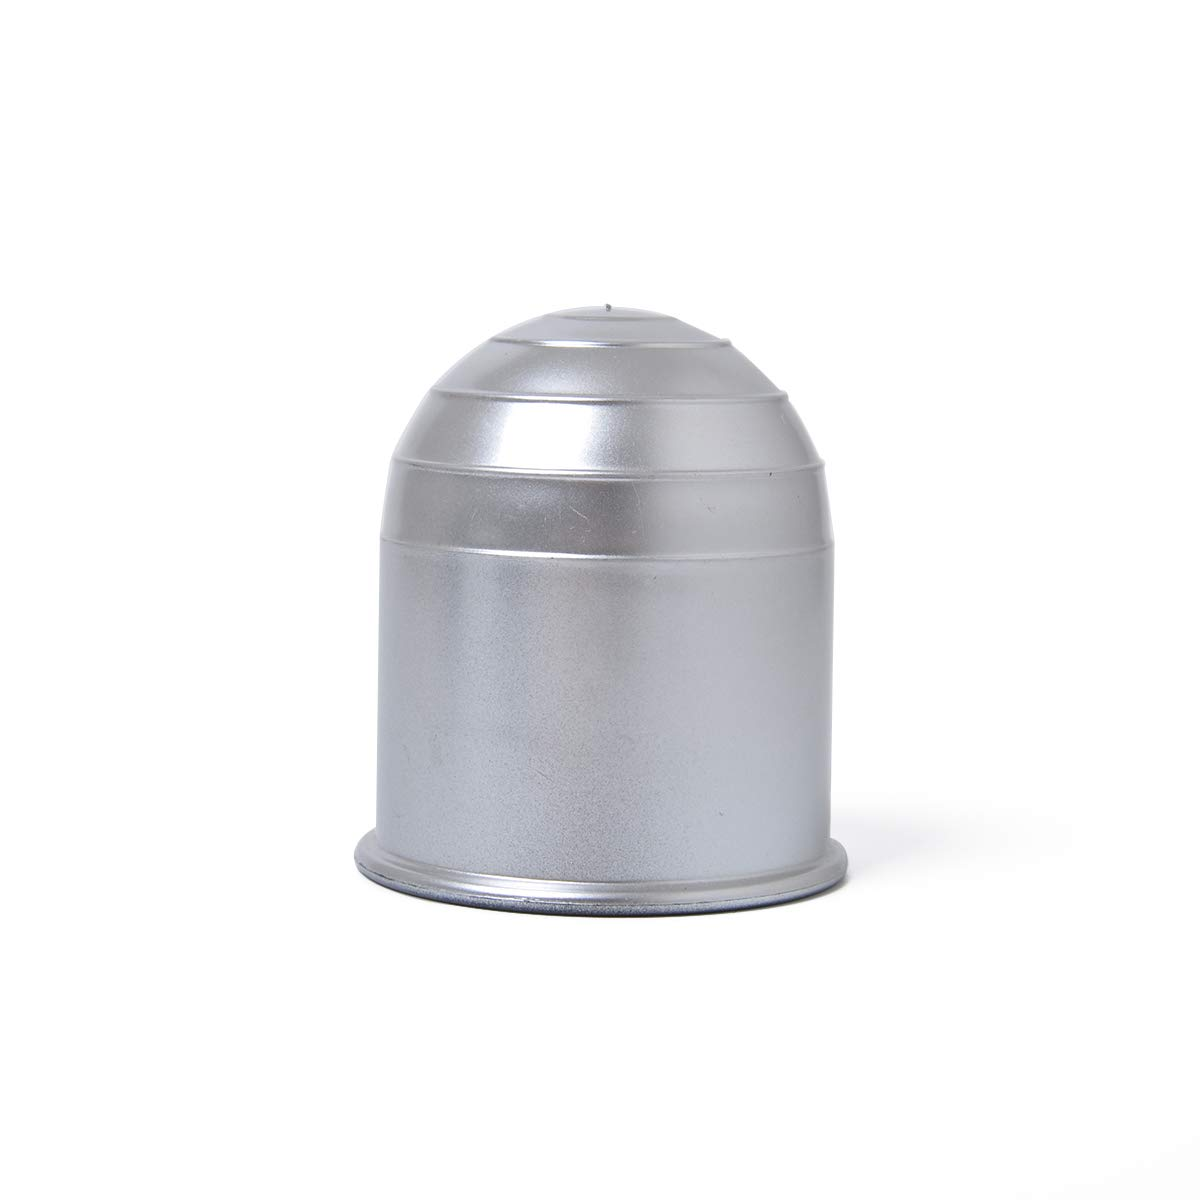 ETbotu Auto Plastic Oval 2 Tow Bar Ball Cover Car Towing Hitch Towball Protect Cap Silver